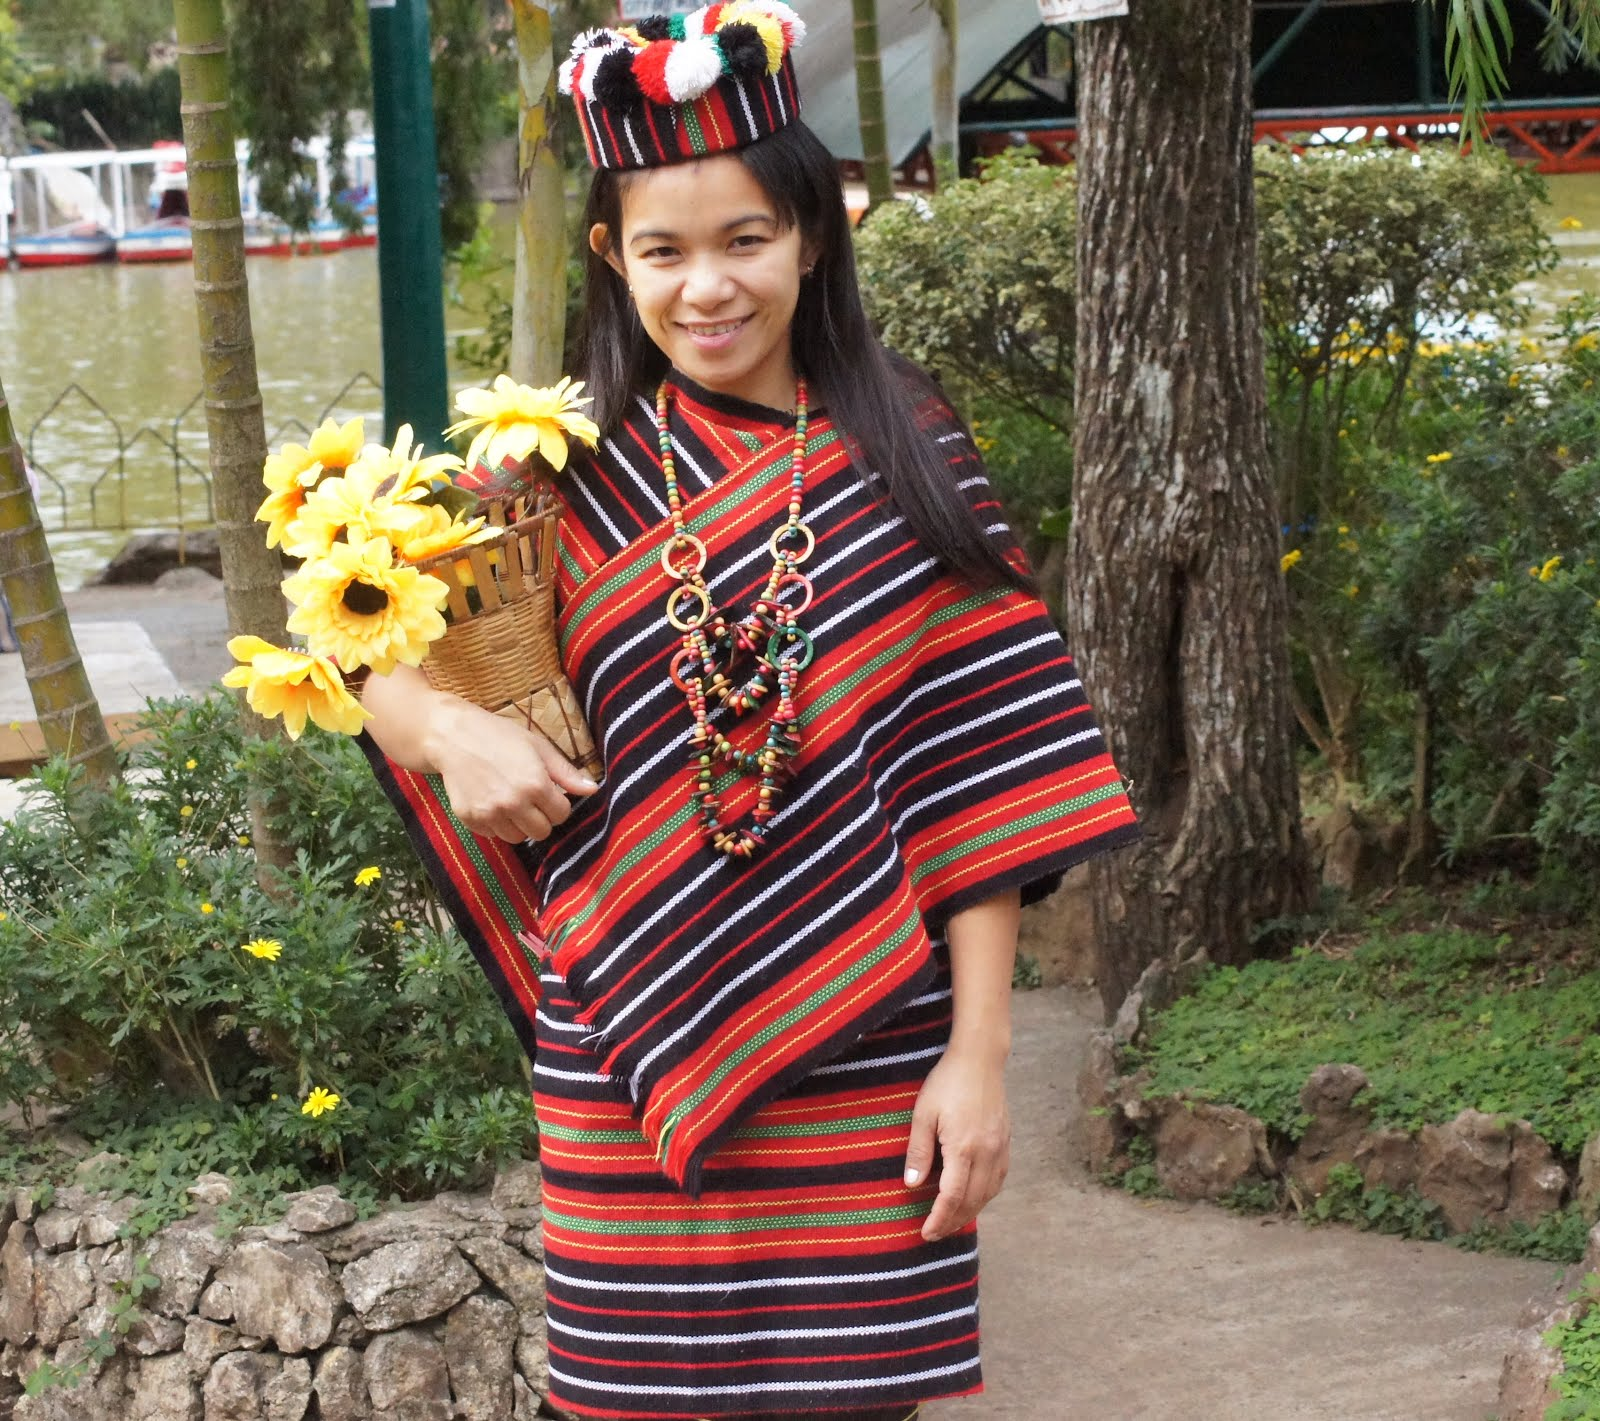 Filipino Native Costumes http://theclamorofkalinga.blogspot.com/2012/01/beautiful-igorot-woman-in-her-native.html